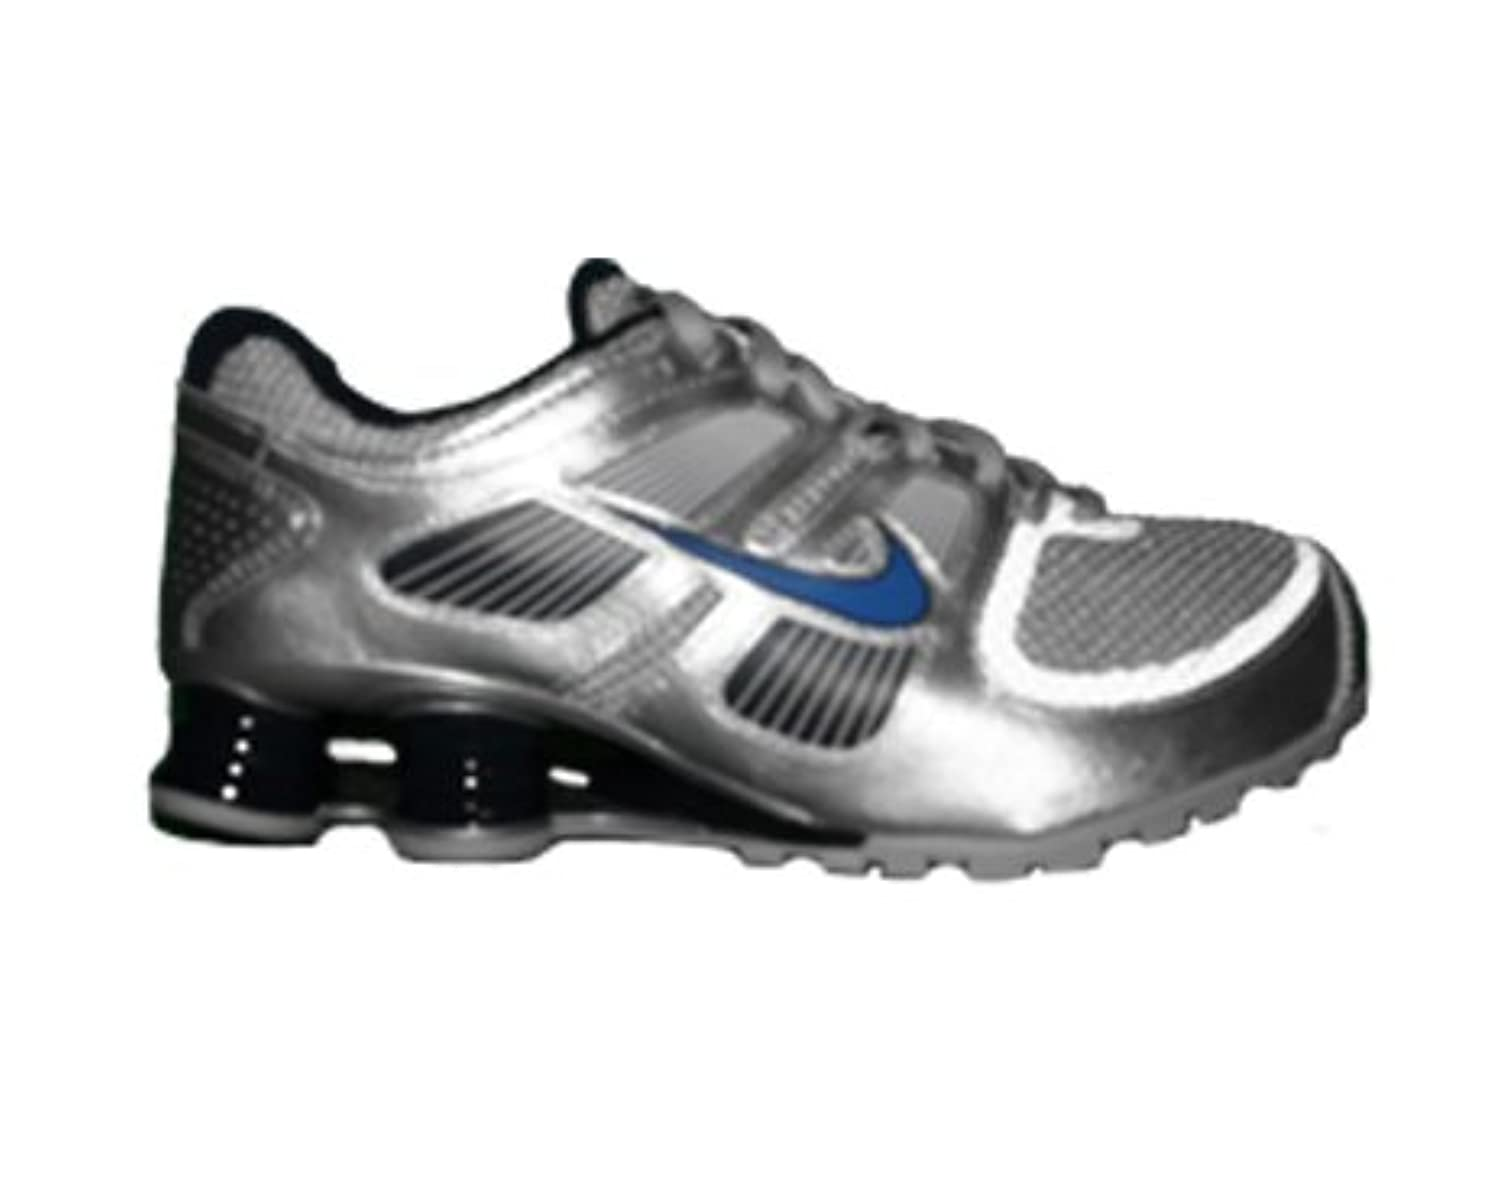 Youth Nike Turbo Shox Since then, next-generation Nike Air Max shoes ... 7af0548265db